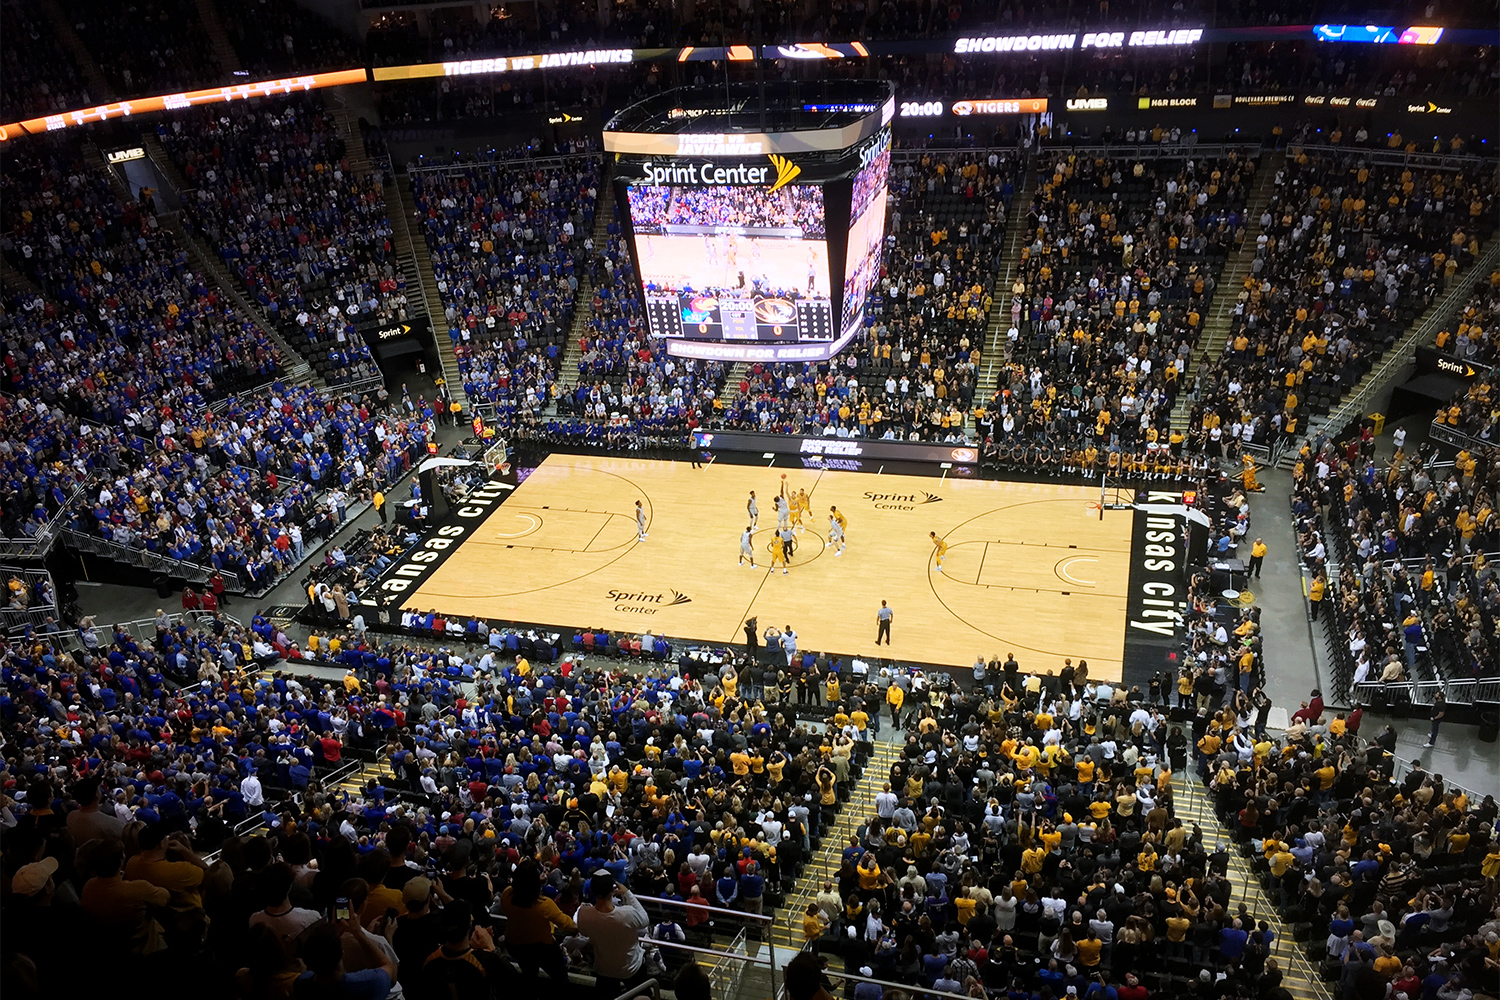 Nearly 19,000 fans of both teams filled the Sprint Center in Kansas City.